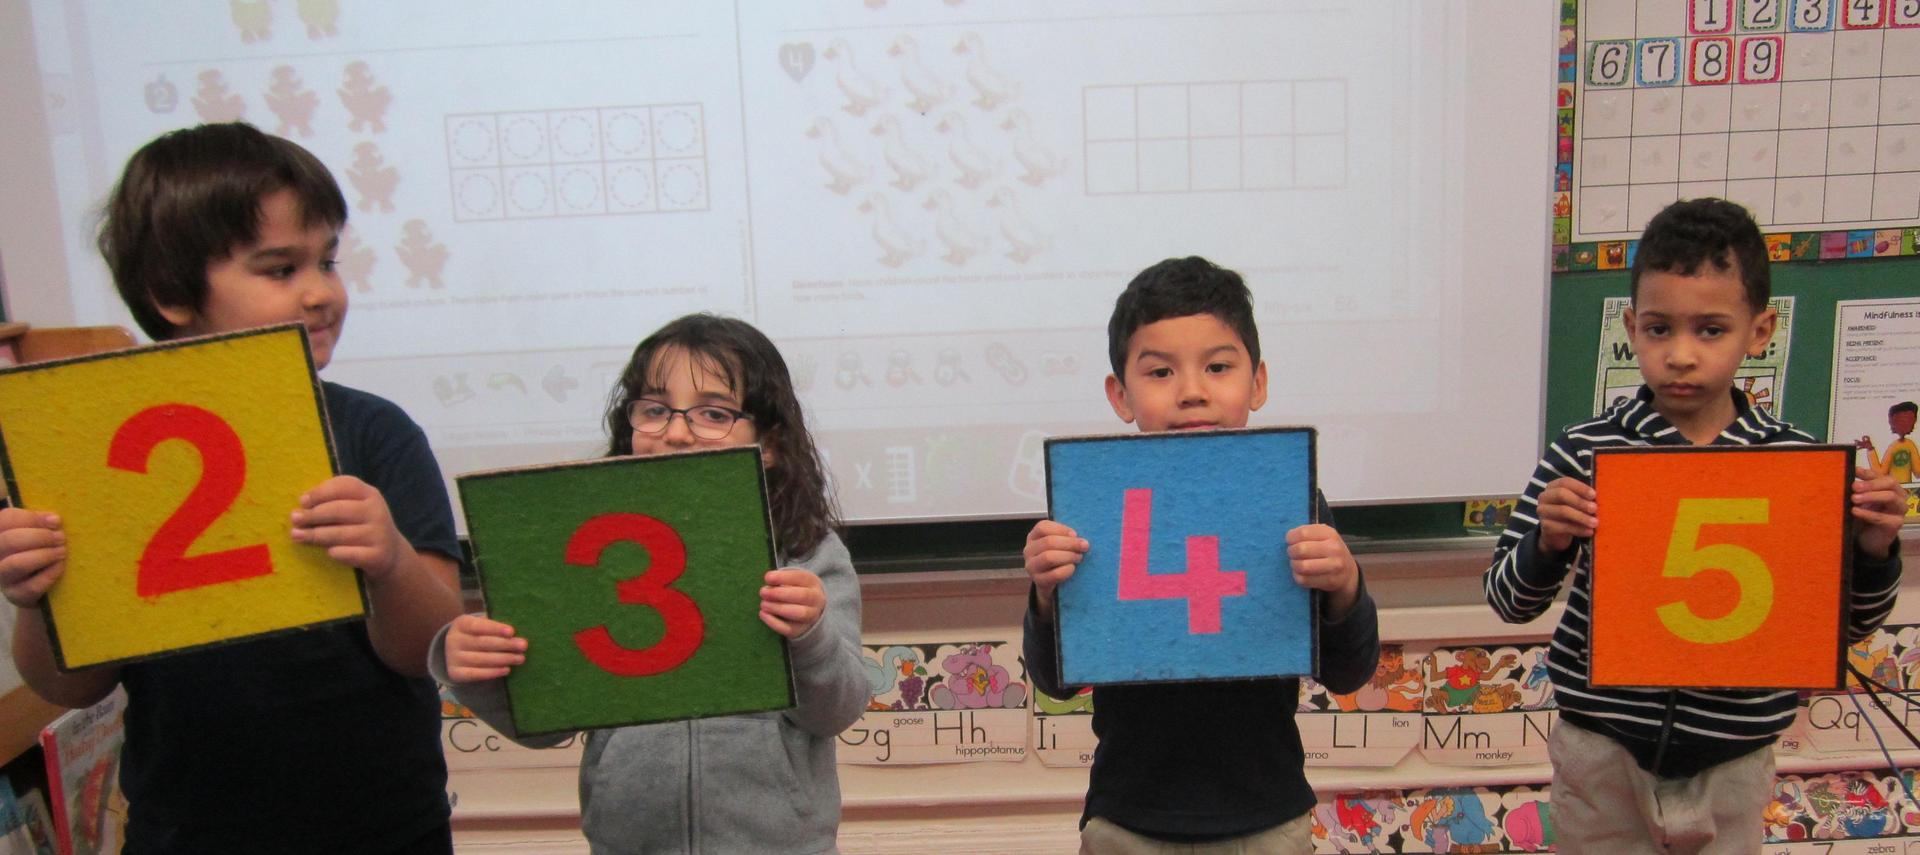 kids holding numbers 3 & 4